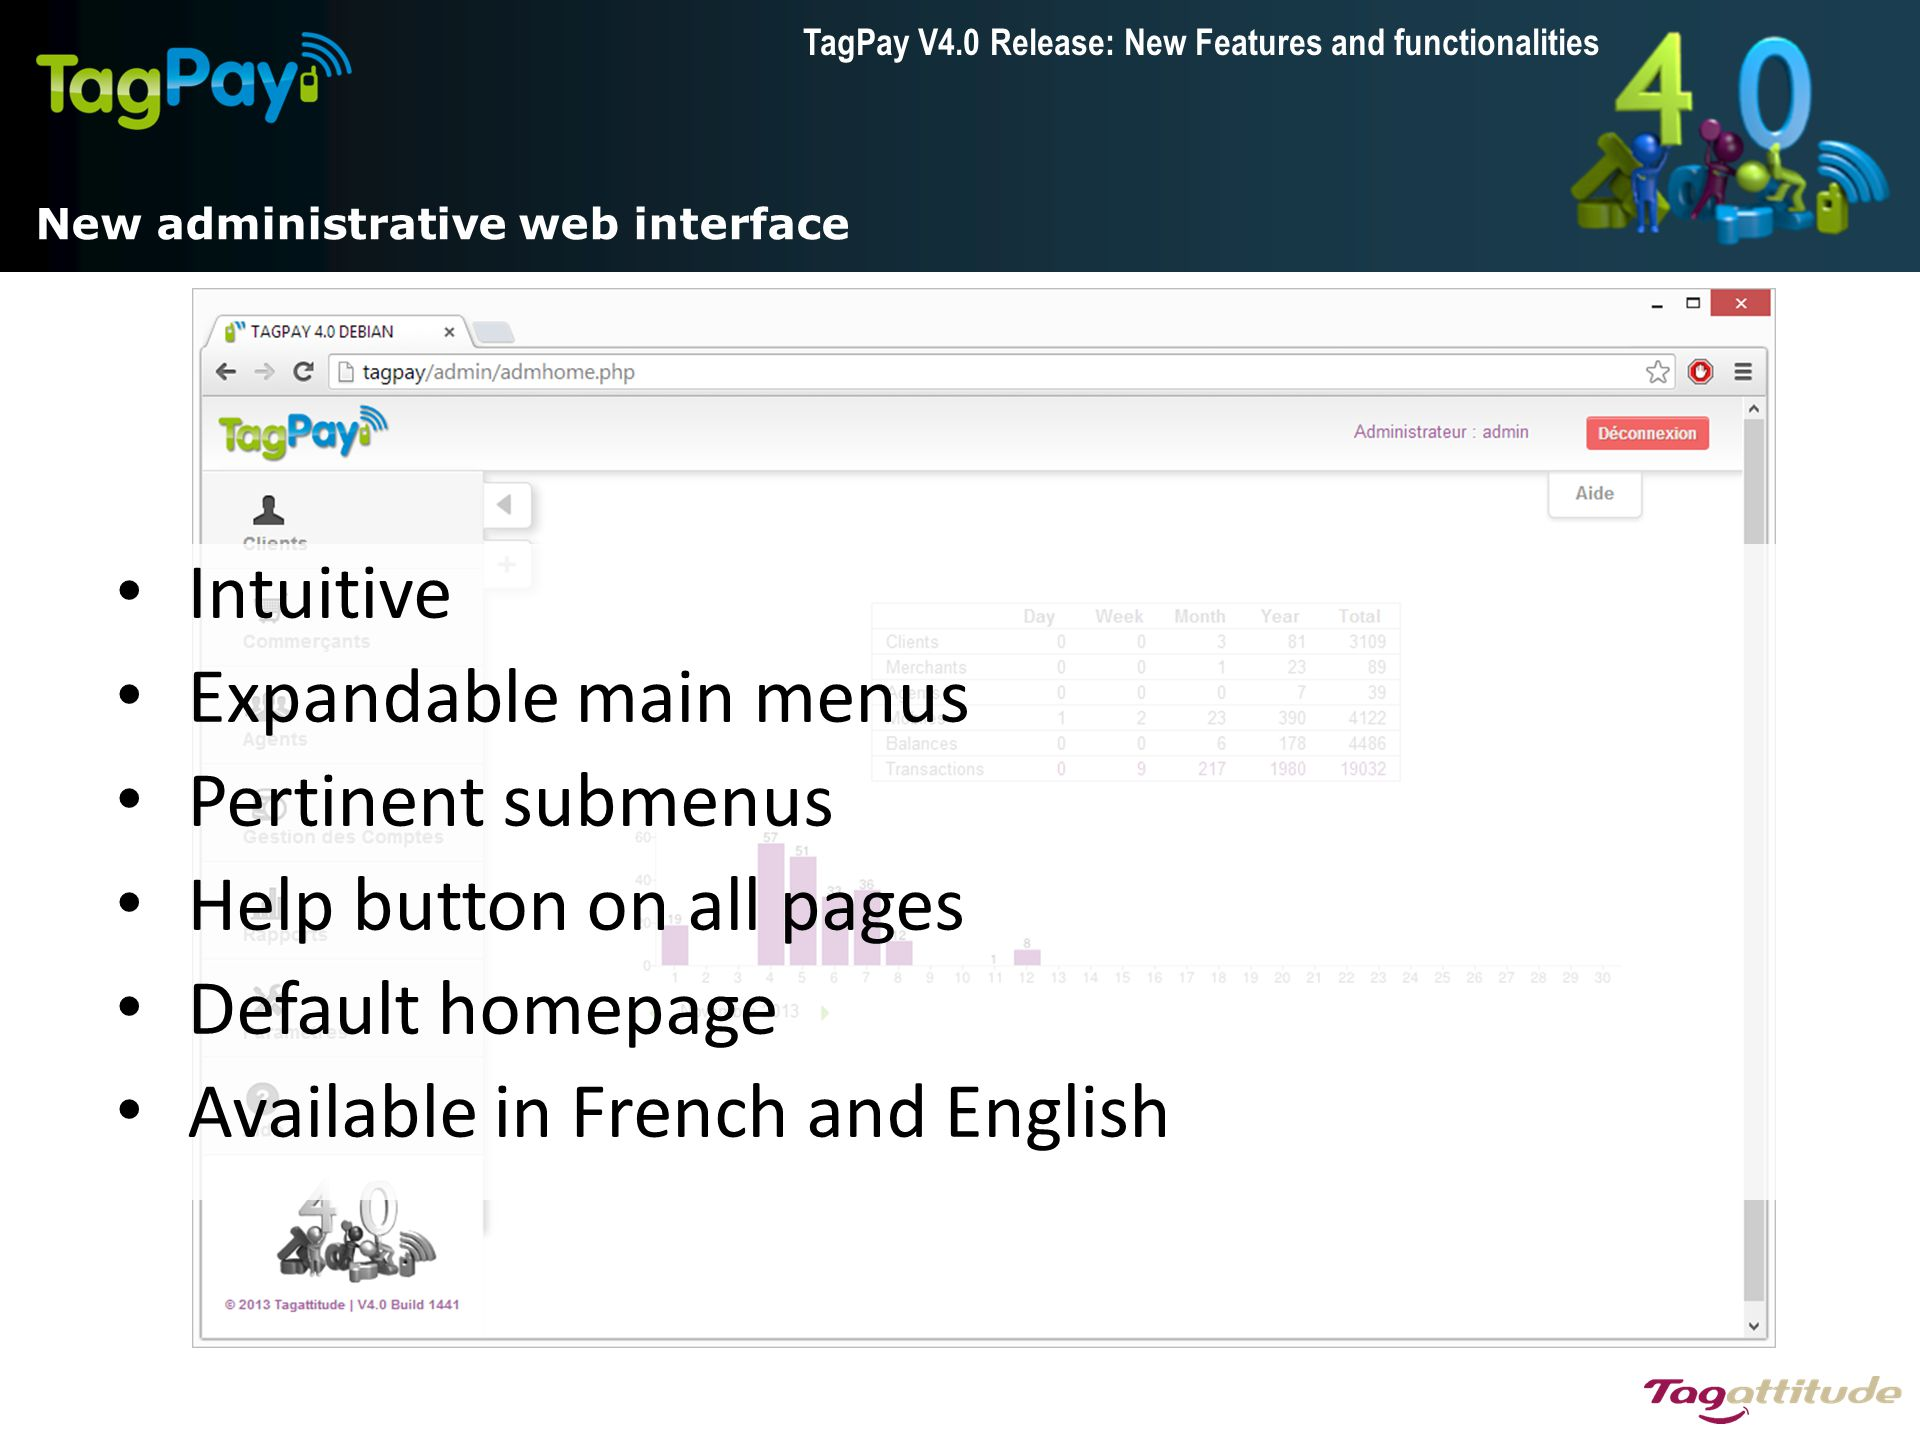 TagPay V4.0 Release: New Features and functionalities New and improved terminals Beta integration of merchant TP1600 app Ingenico models: – iWL220 – iWL250 – iWL Touch 280 Expected availability Q1 2014